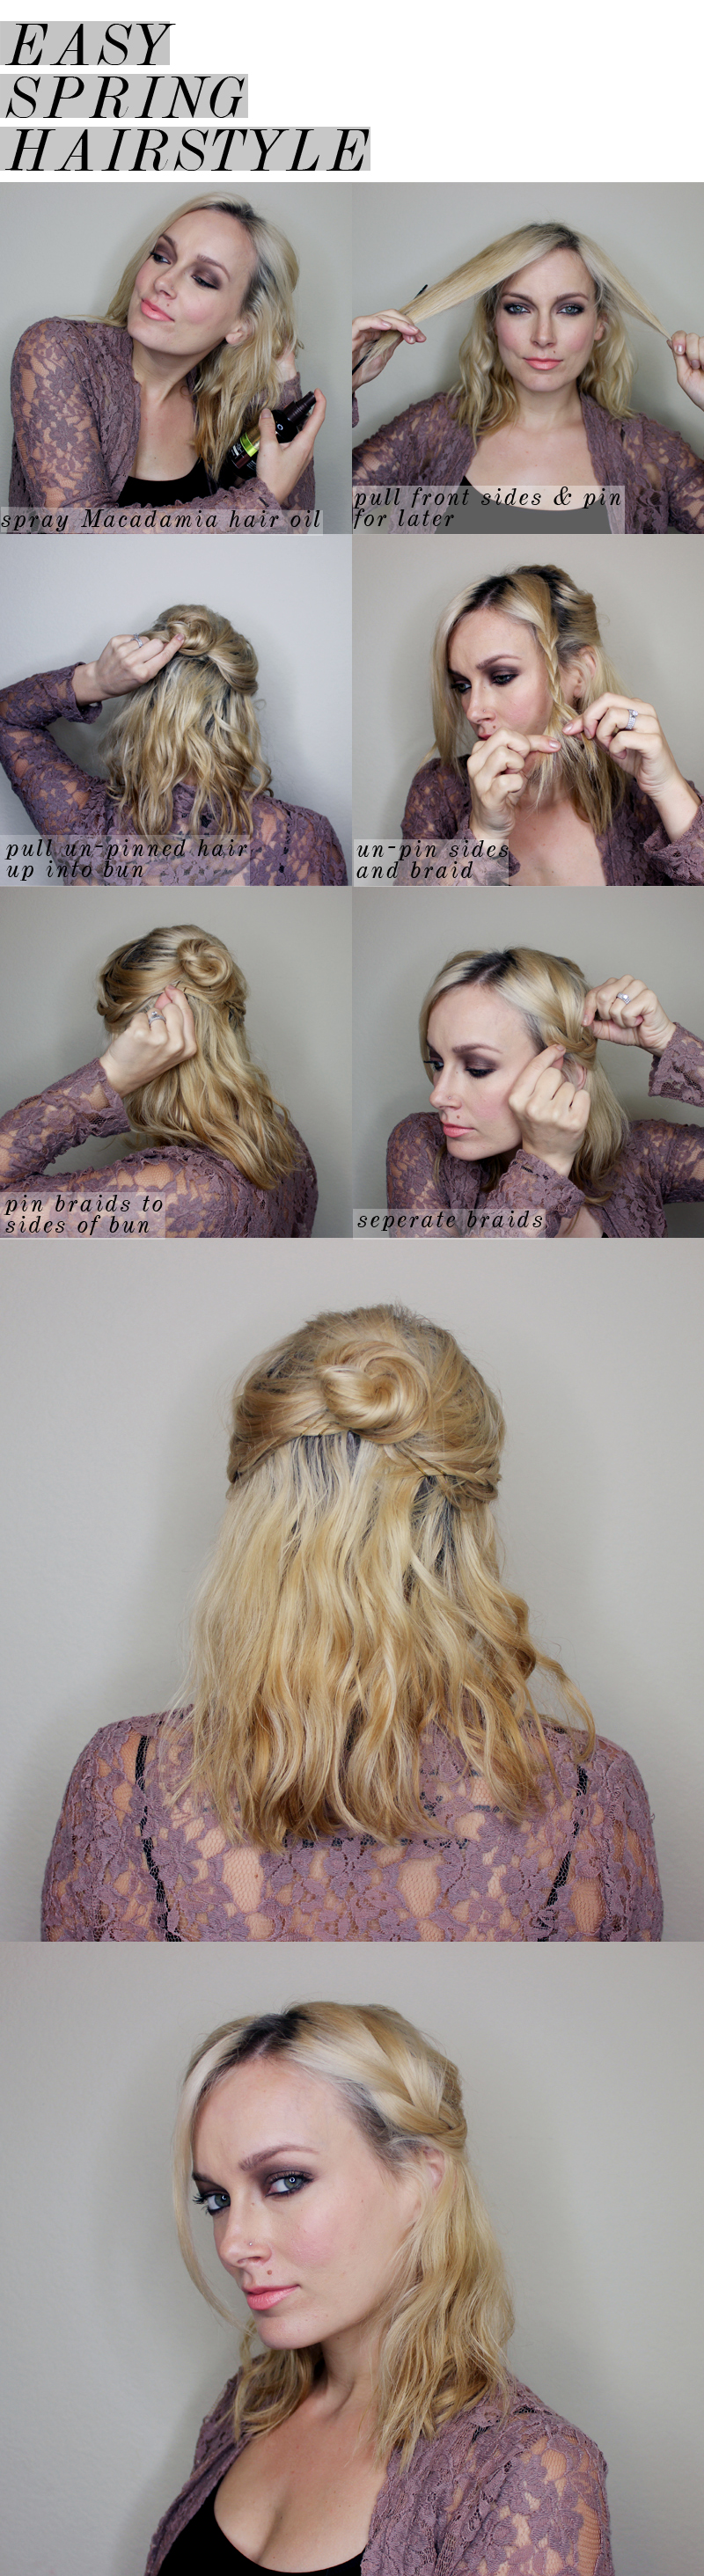 Easy spring half updo for medium length hair citizens of beauty easy spring updo for medium length hair baditri Image collections